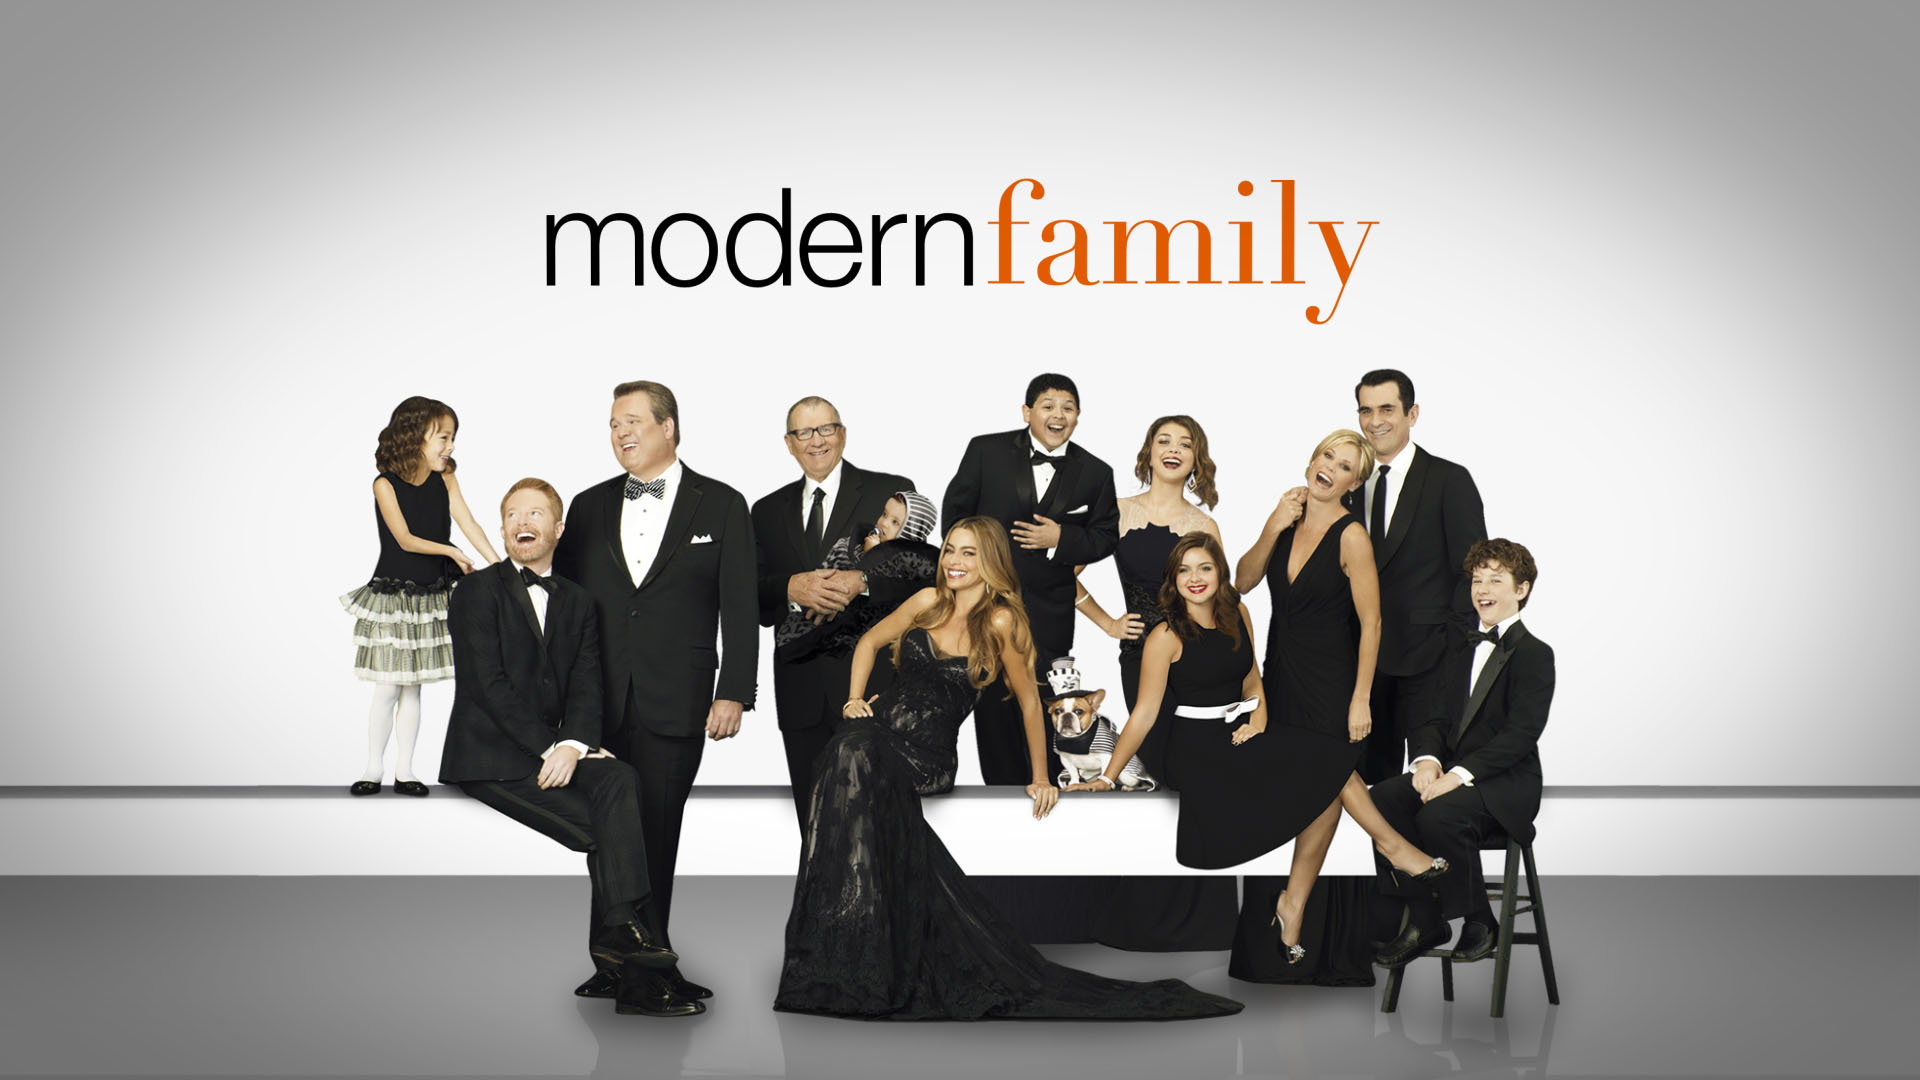 Bildresultat för modern family season 6